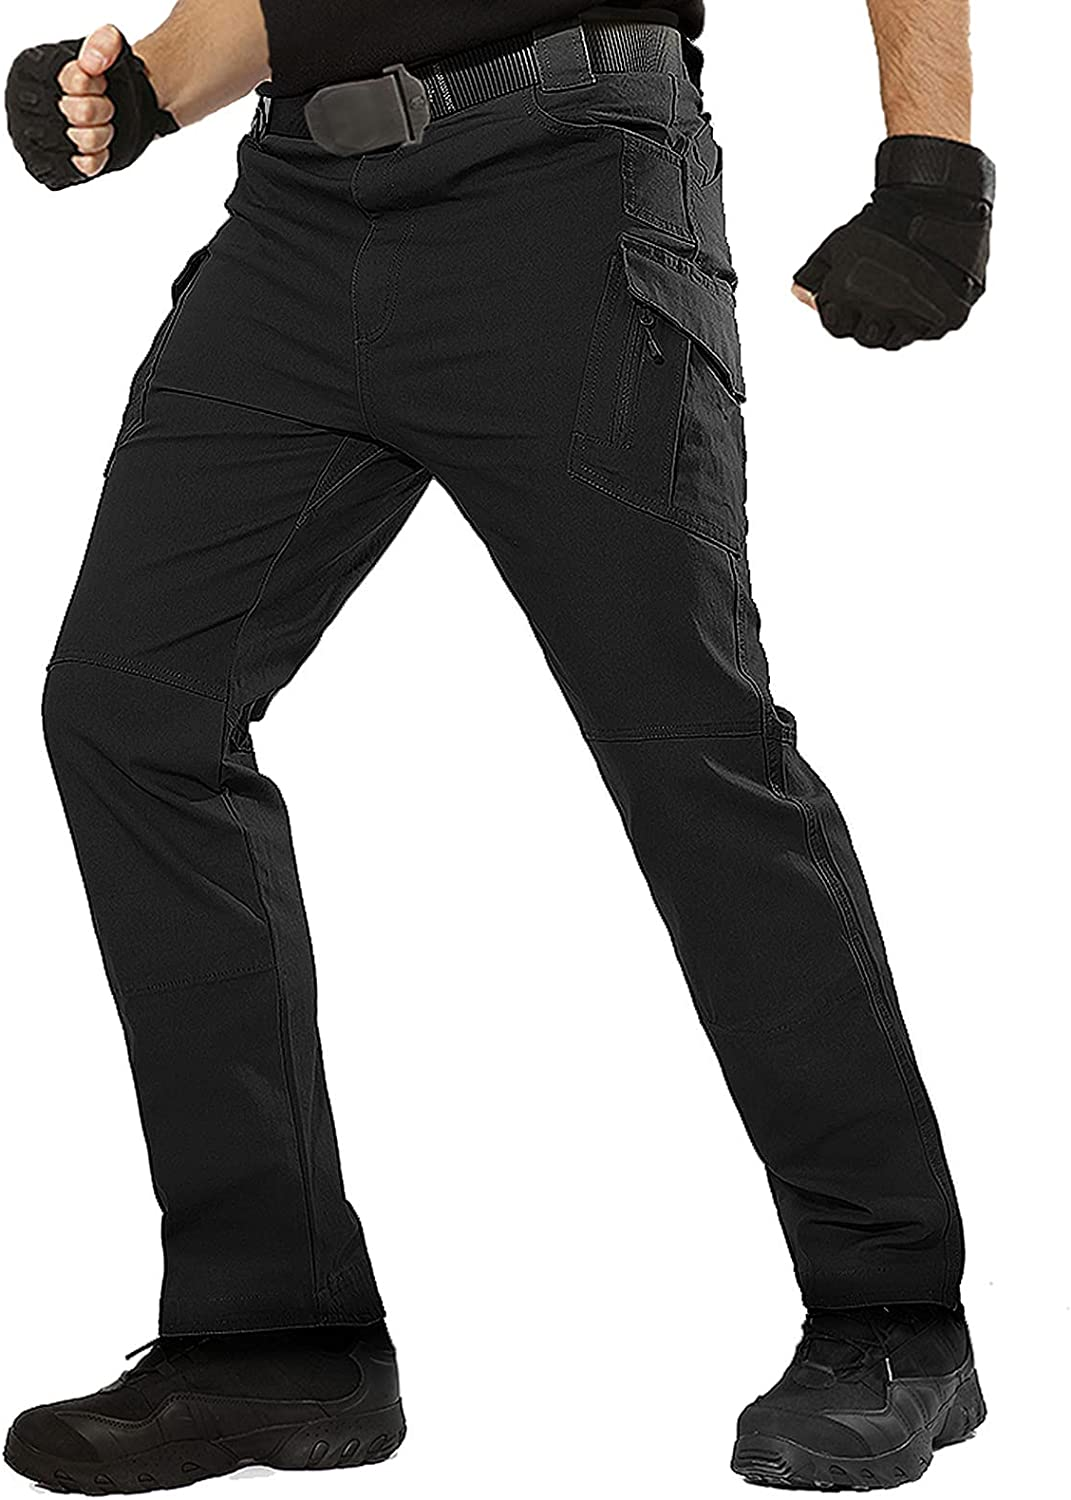 TACT Under blast sales BESU Men's Now free shipping Outdoor Military Tactical Cotton Rip-Stop Pants